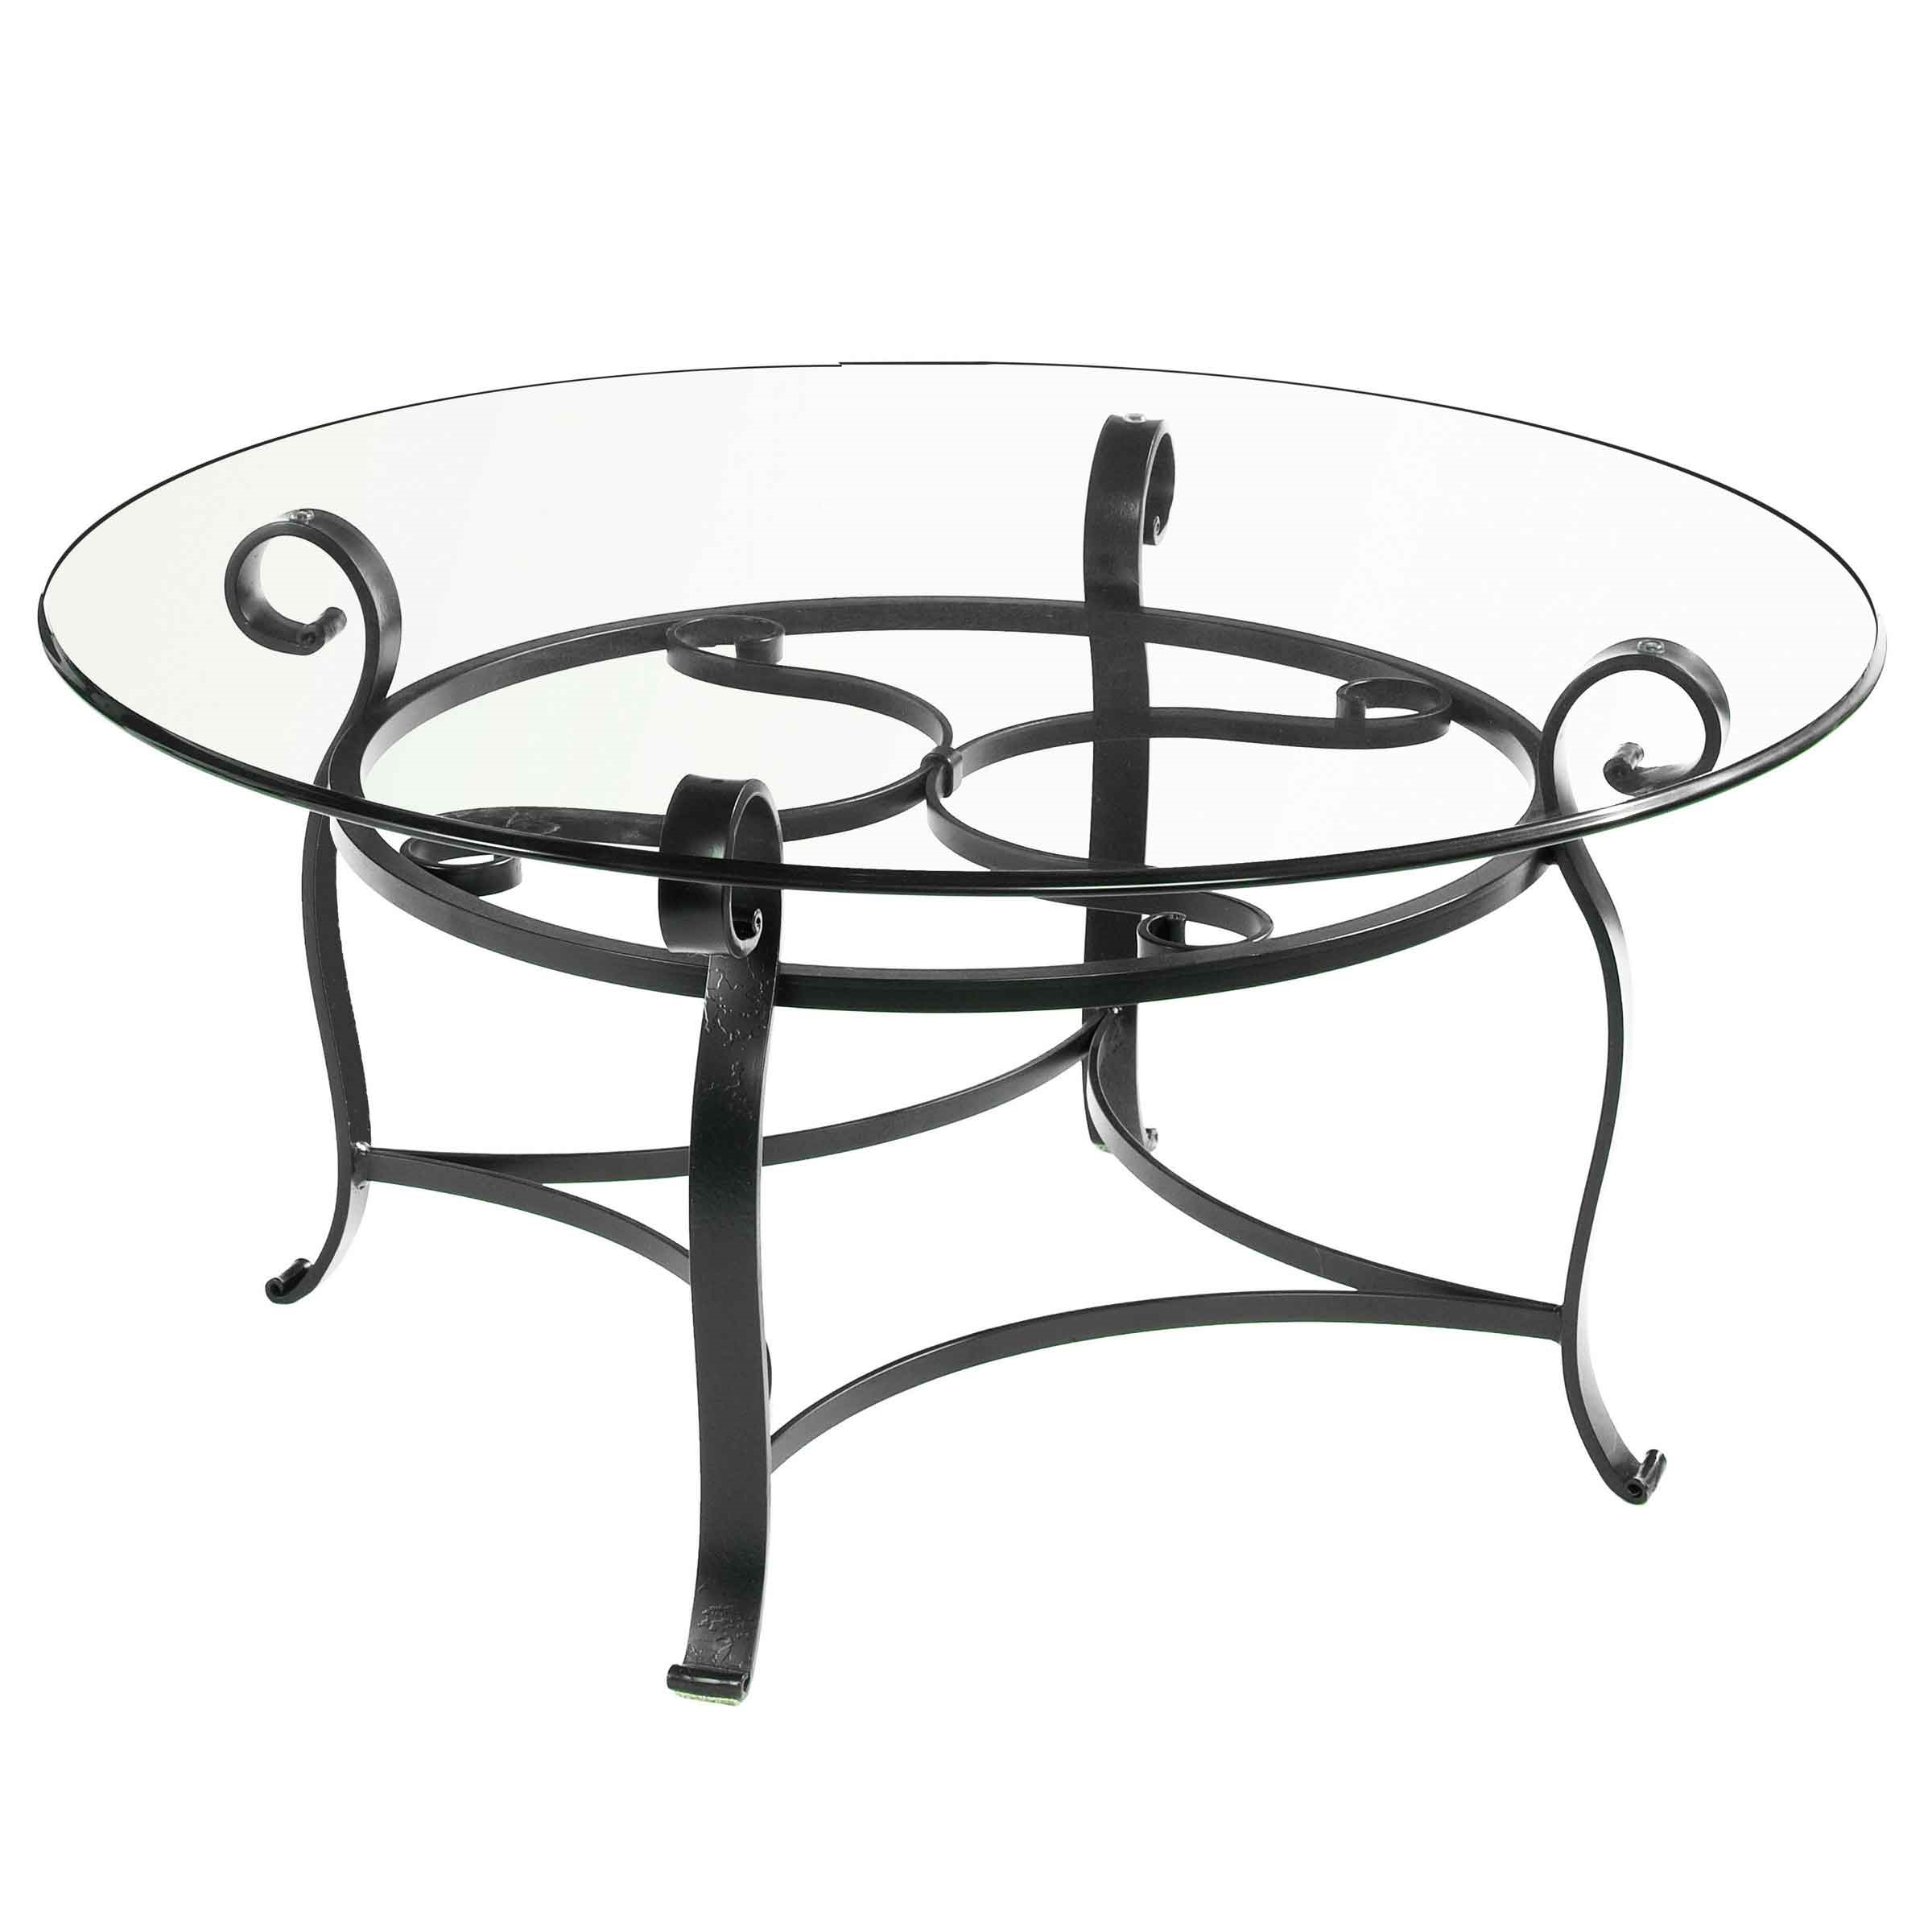 "Camino 42"" Round Cocktail Table"